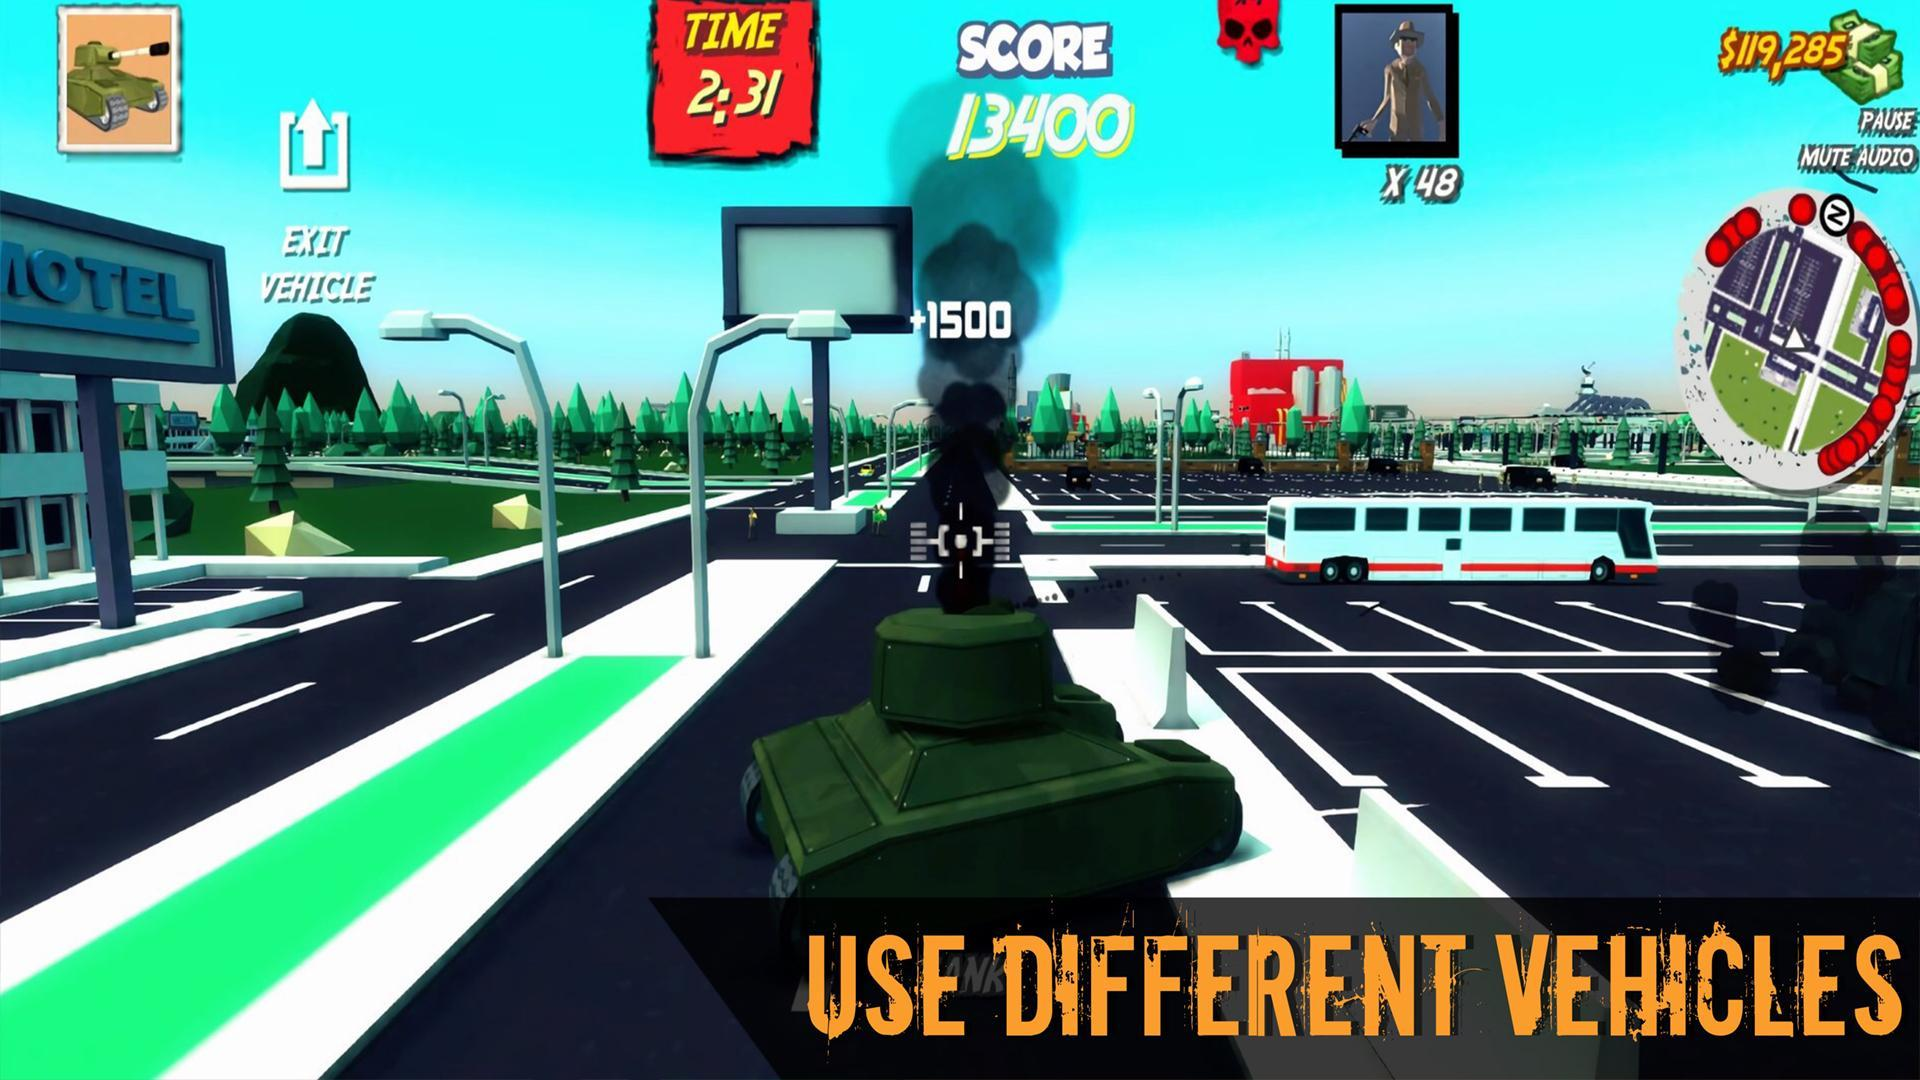 Poly City - Vengeance: Third person shooter cho Android